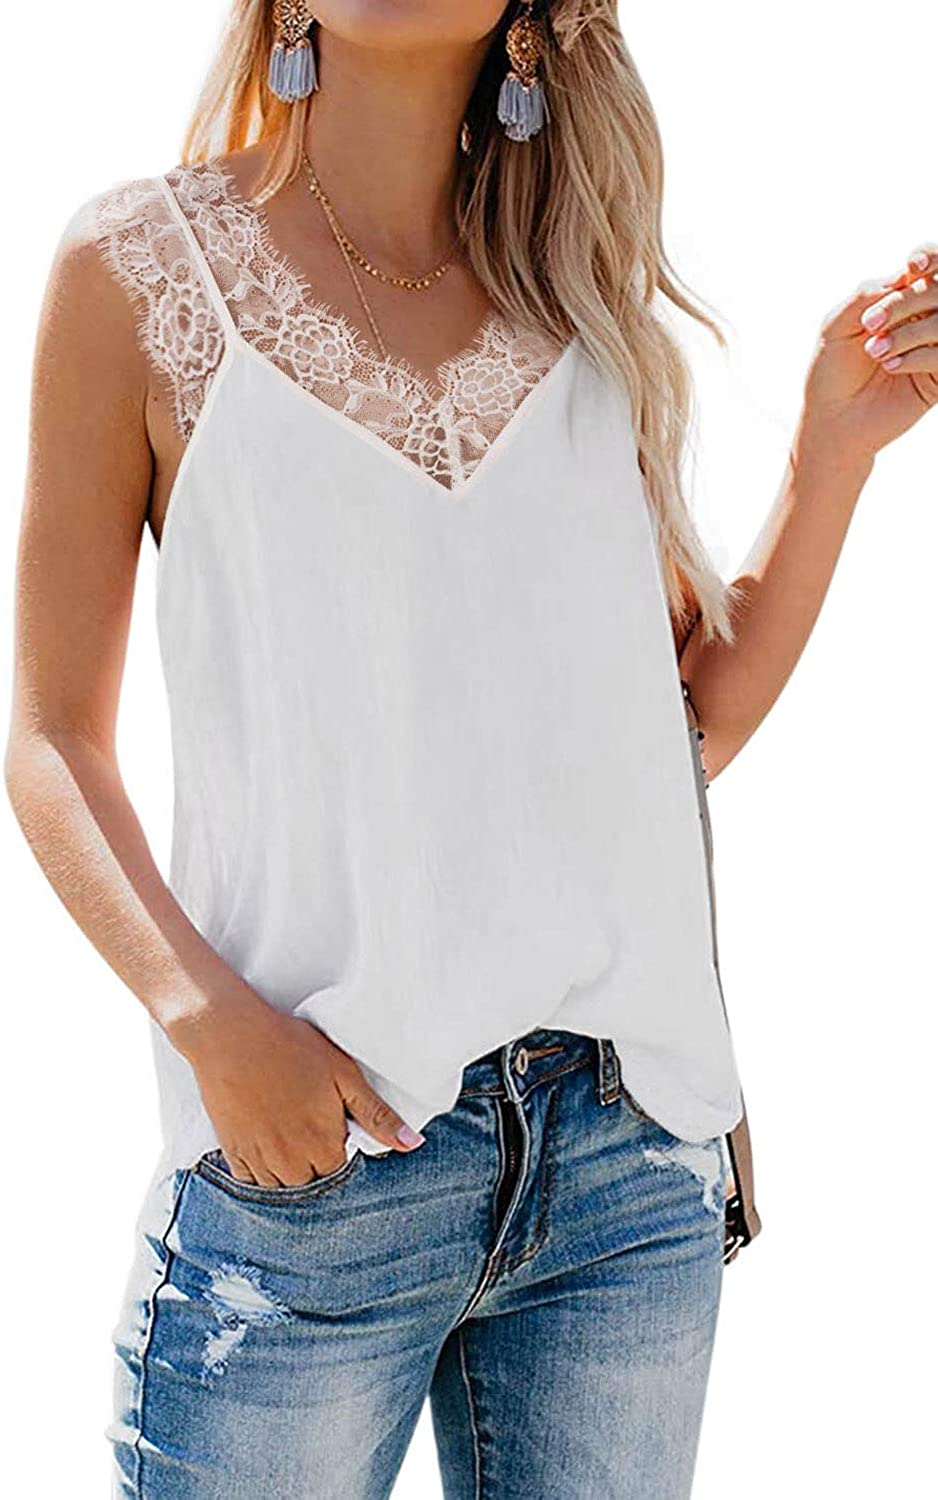 BLENCOT Women's Summer Sleeveless Shirts V Neck Lace Strappy Trim Camisole Tank Tops Loose Blouse